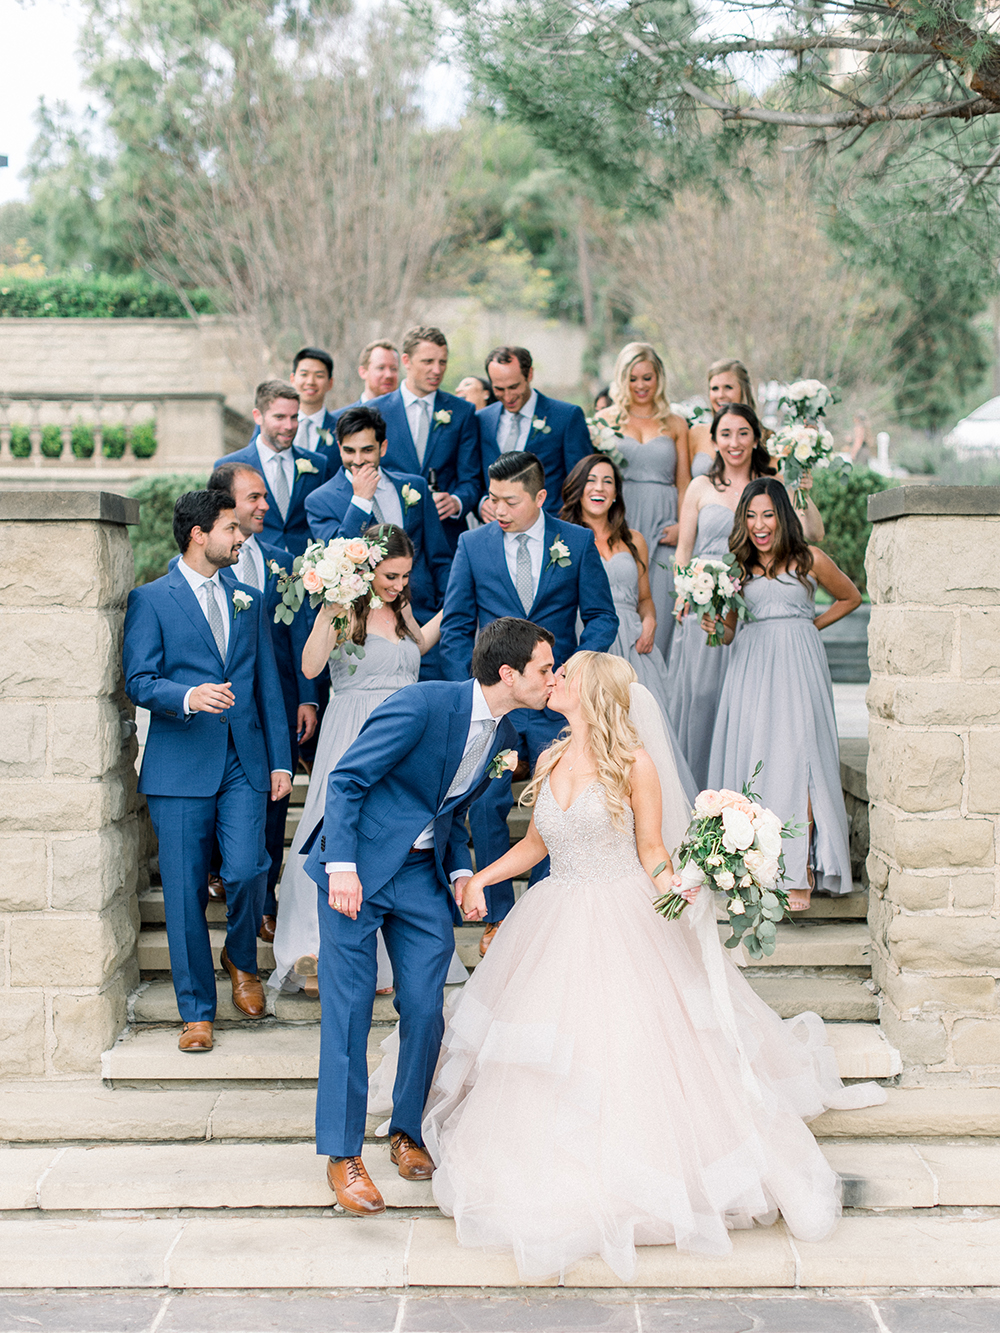 Romantic and Classic Greystone Mansion Wedding by Lucky Day Events Co. x Jordan Galindo Photography // Bridal Party Photos